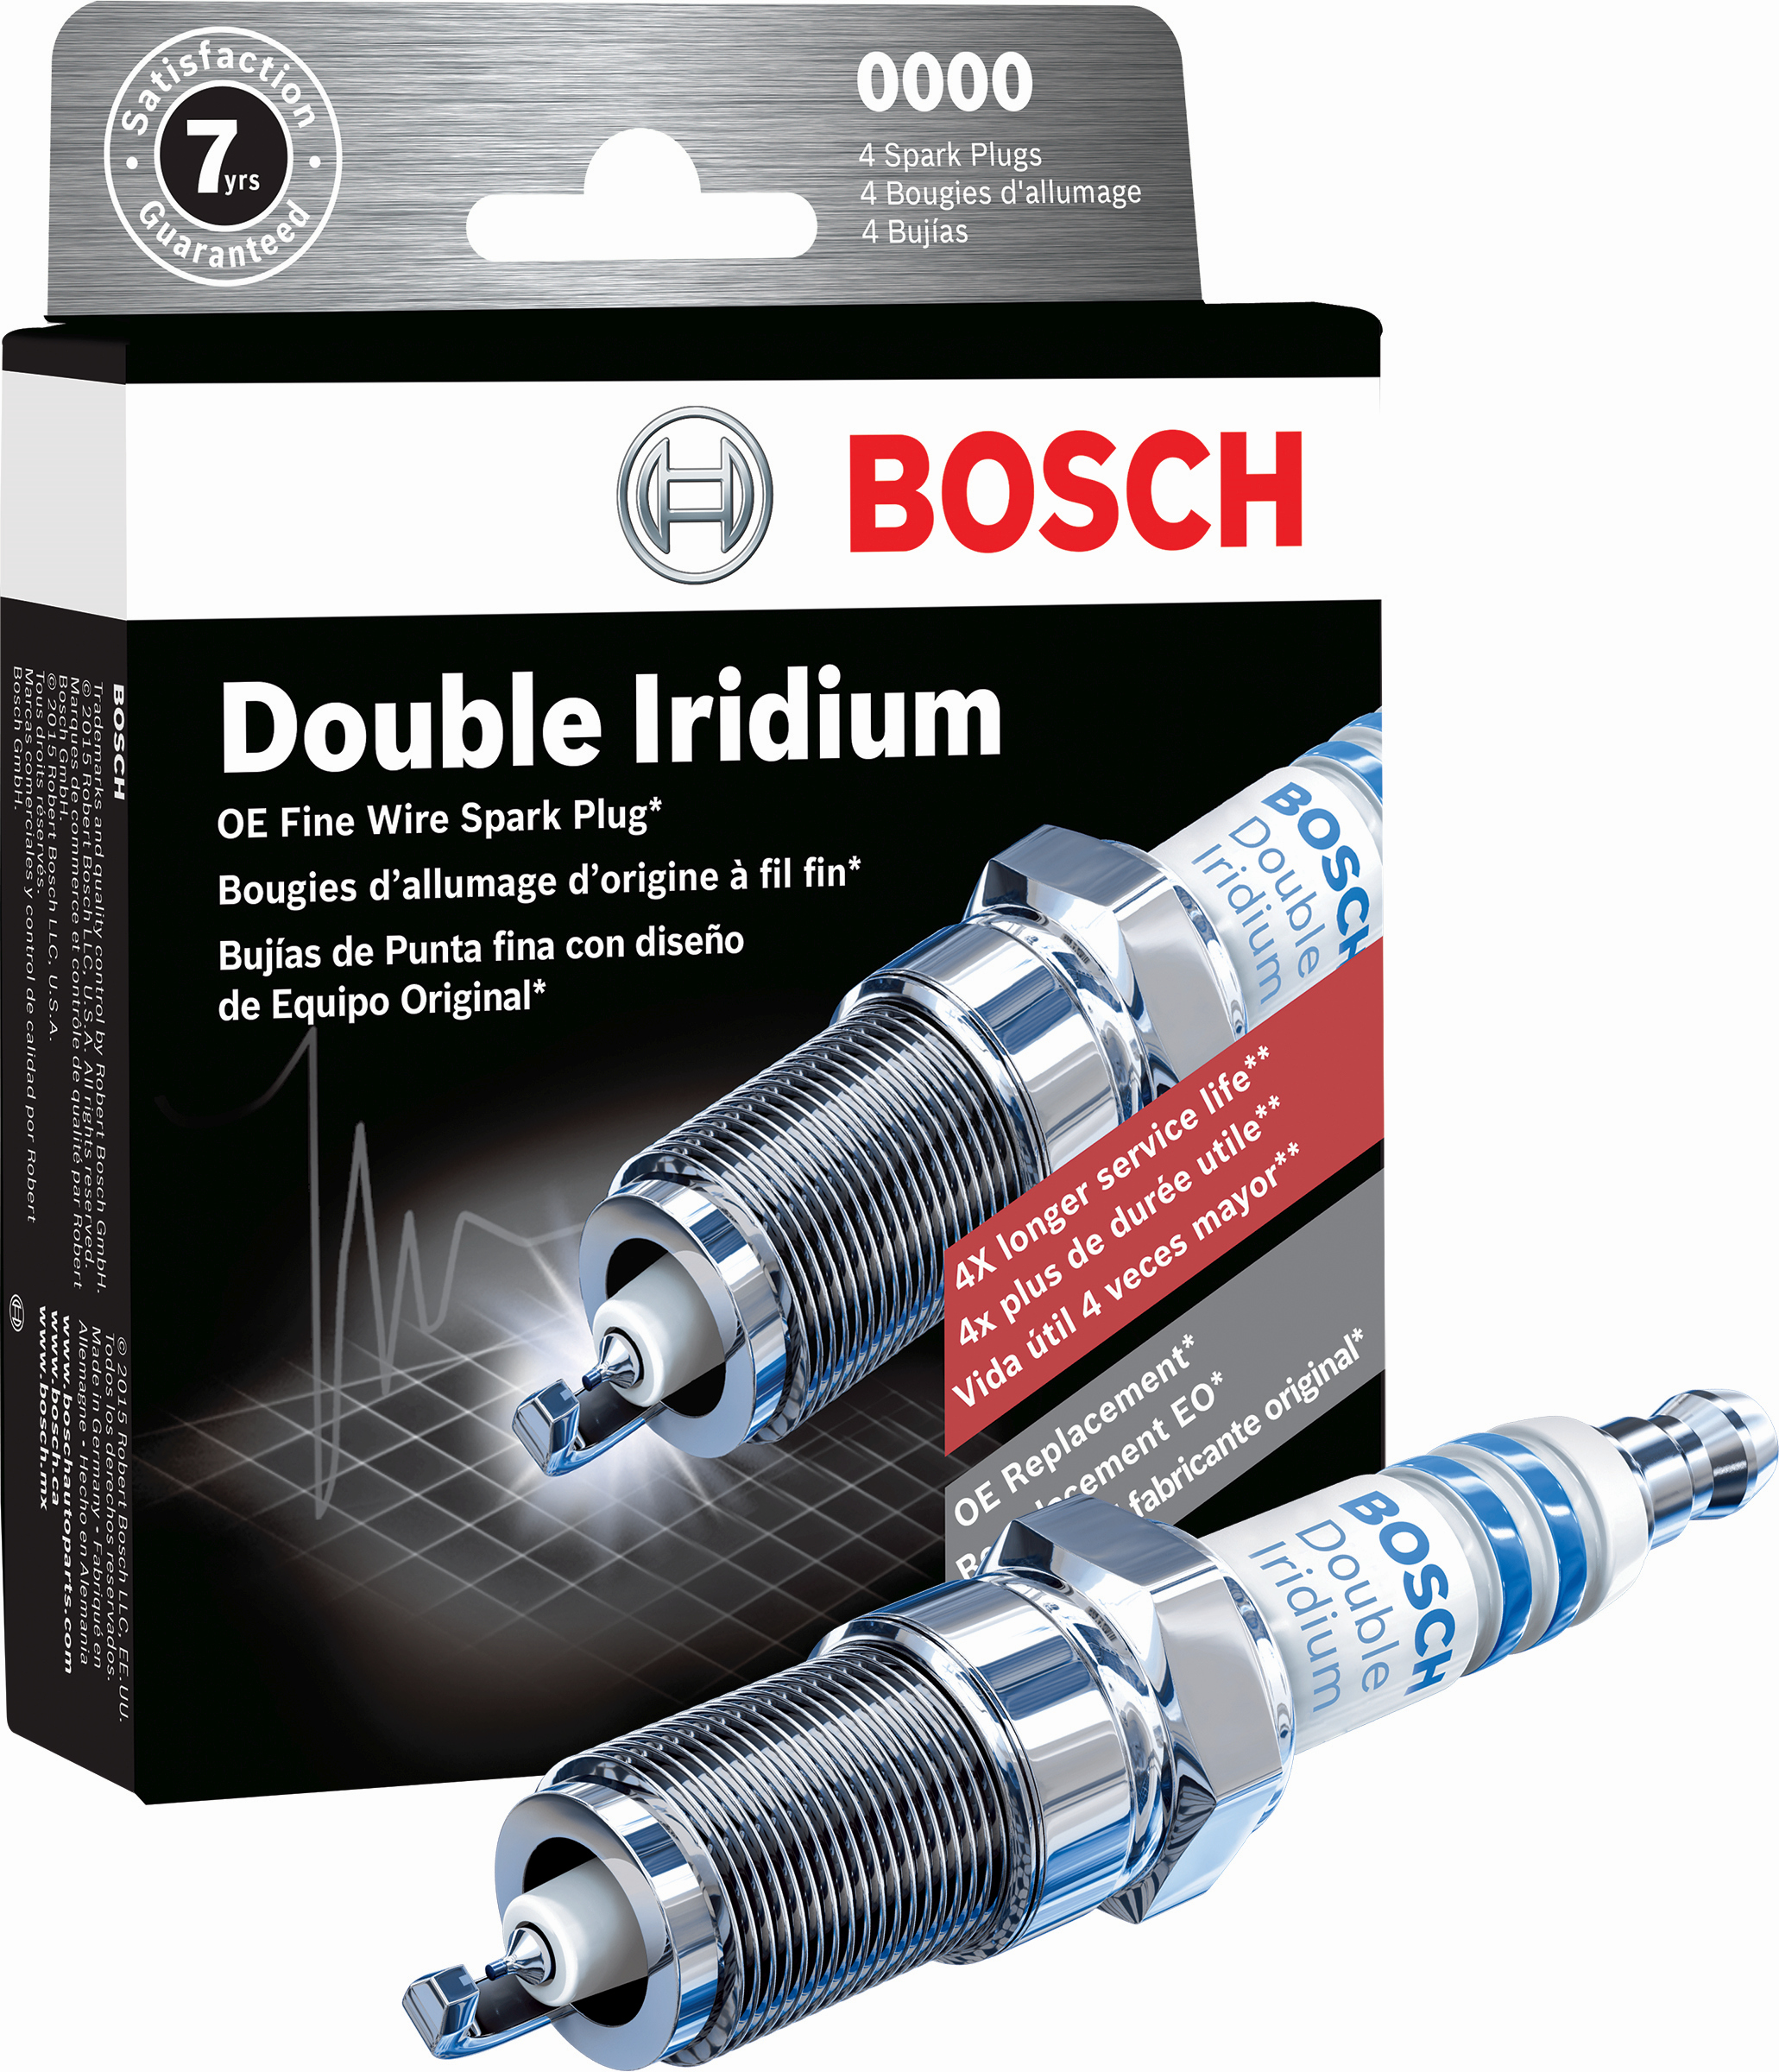 Bosch Launches Fine Wire Double Iridium Spark Plugs